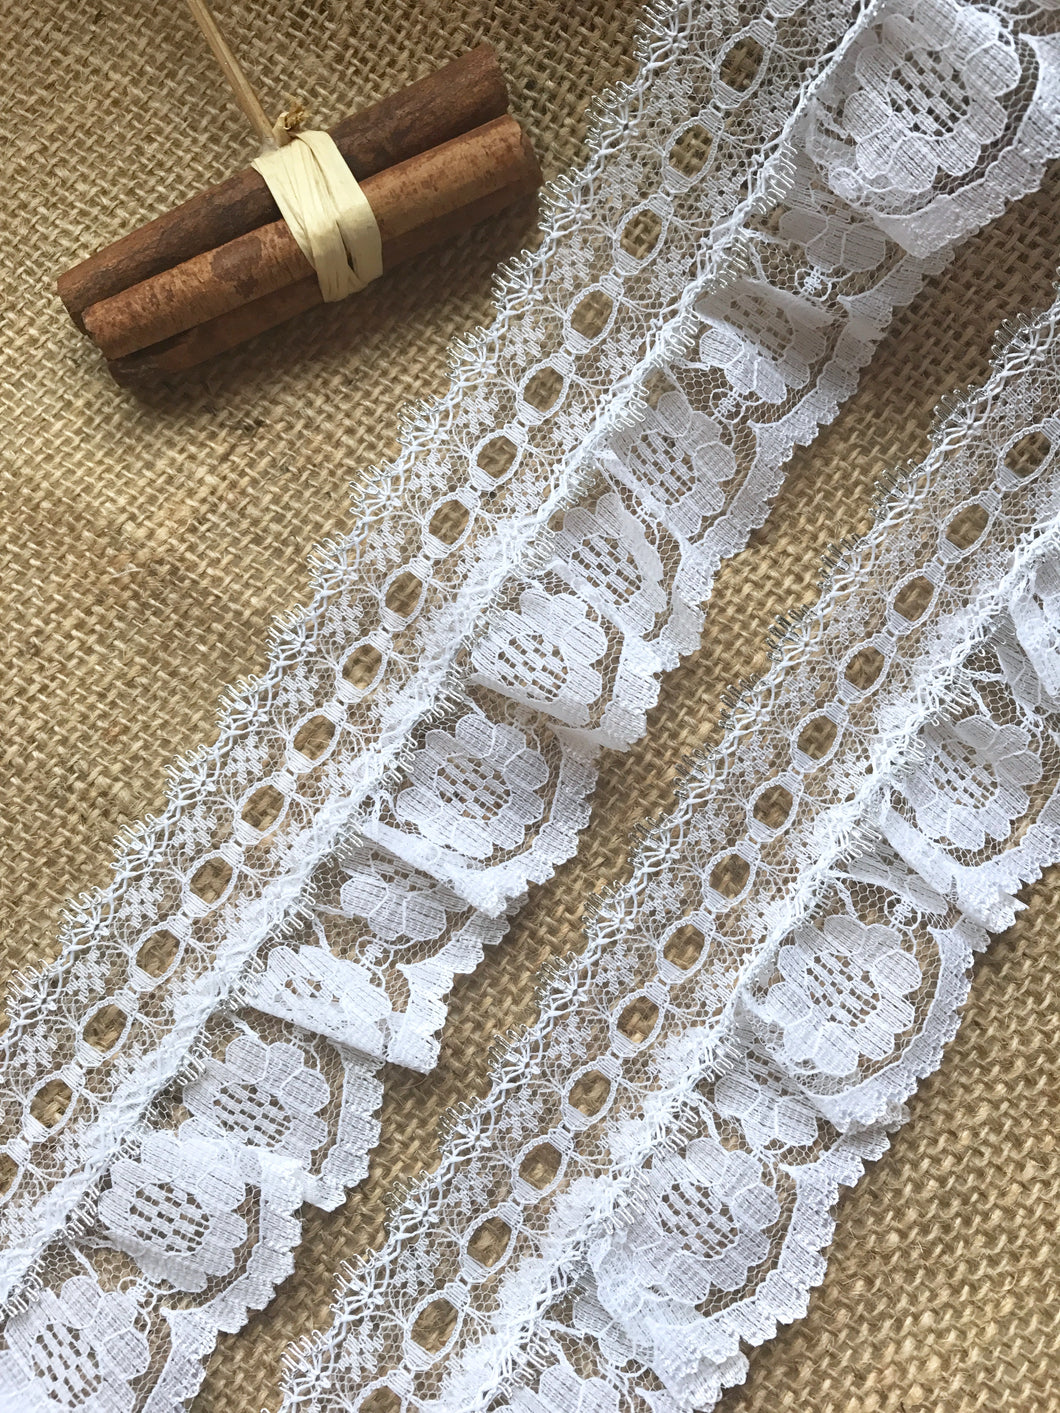 Pretty White with Silver Gathered Lace (with ribbon slot) 6.5 cm/2.5